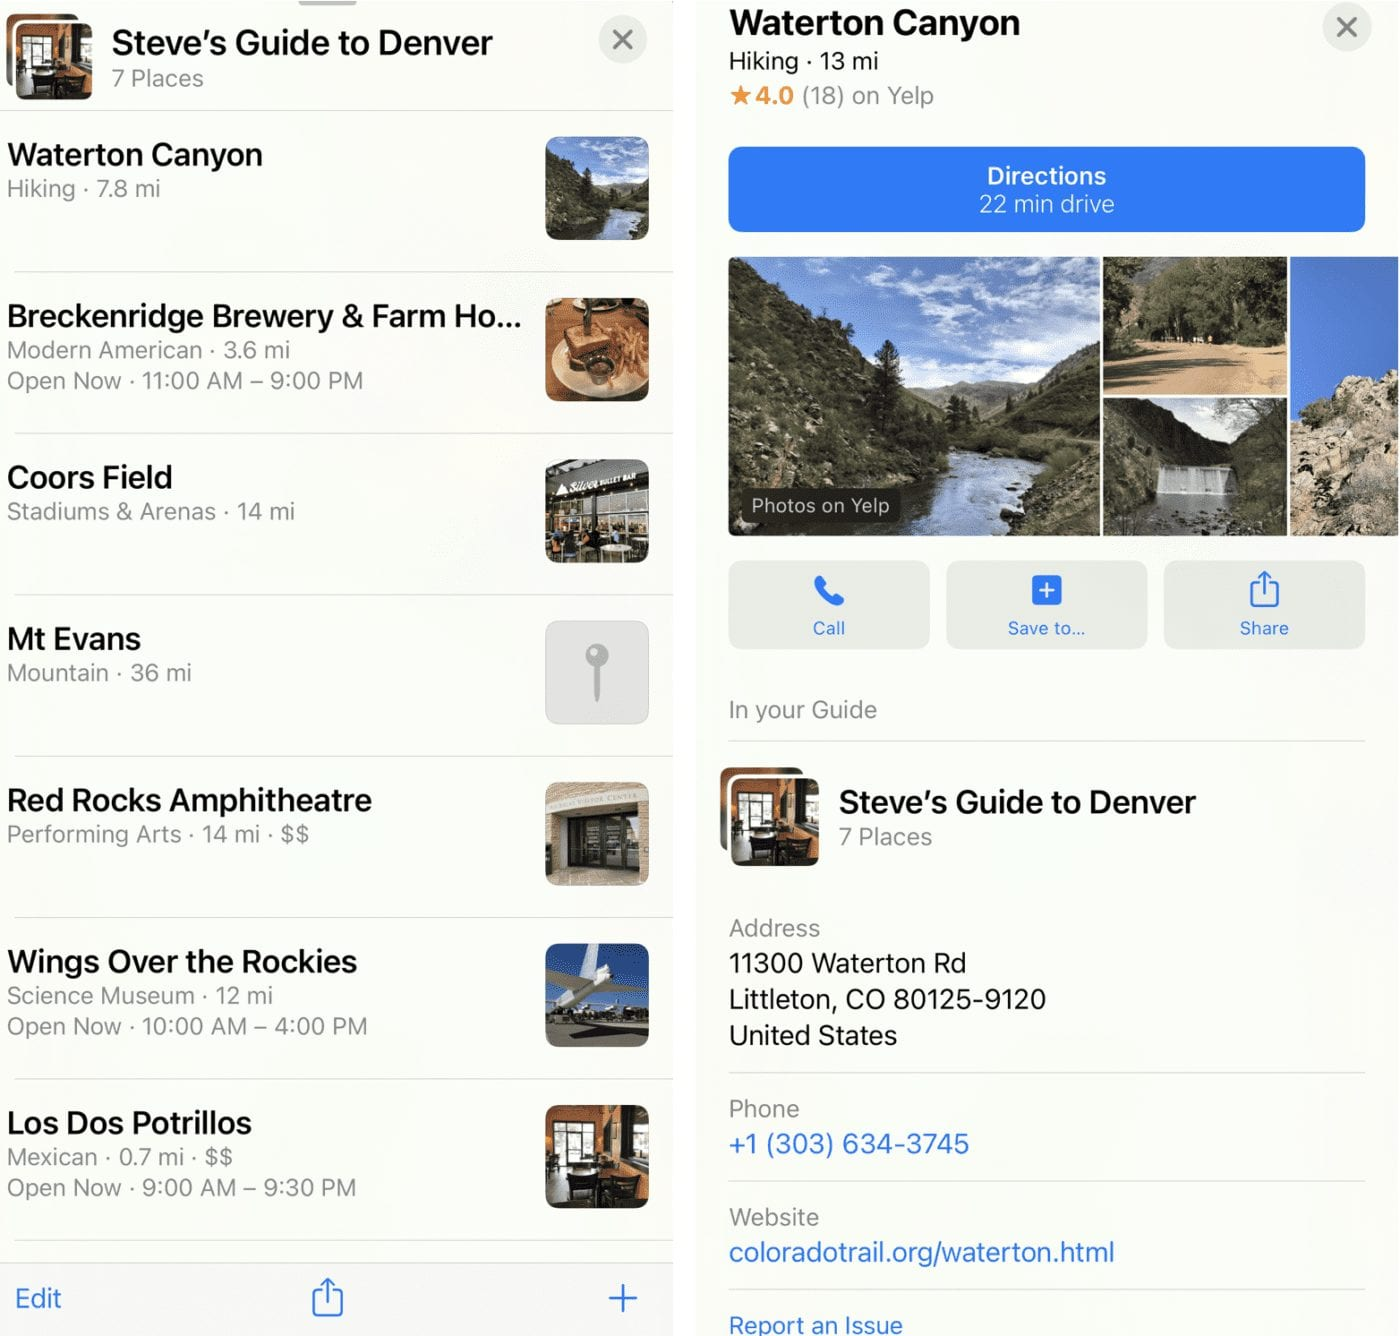 The completed Guide at left, with a single location listing at right